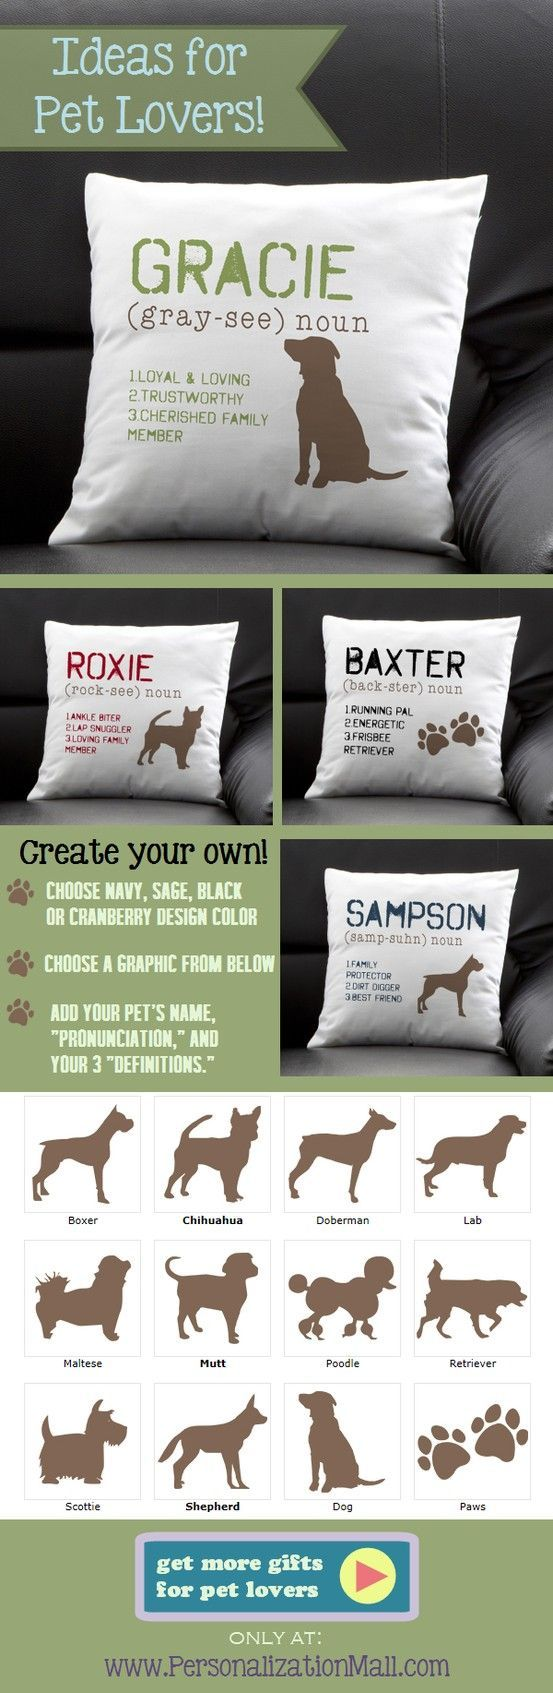 "This pillow is so cute! I love how you can personalize it with your own dog's name ""pronunciation"" and ""definition"" so you can fit it with your dog's personality perfectly! This site has the greatest pet gifts or gifts for pet lovers!:"